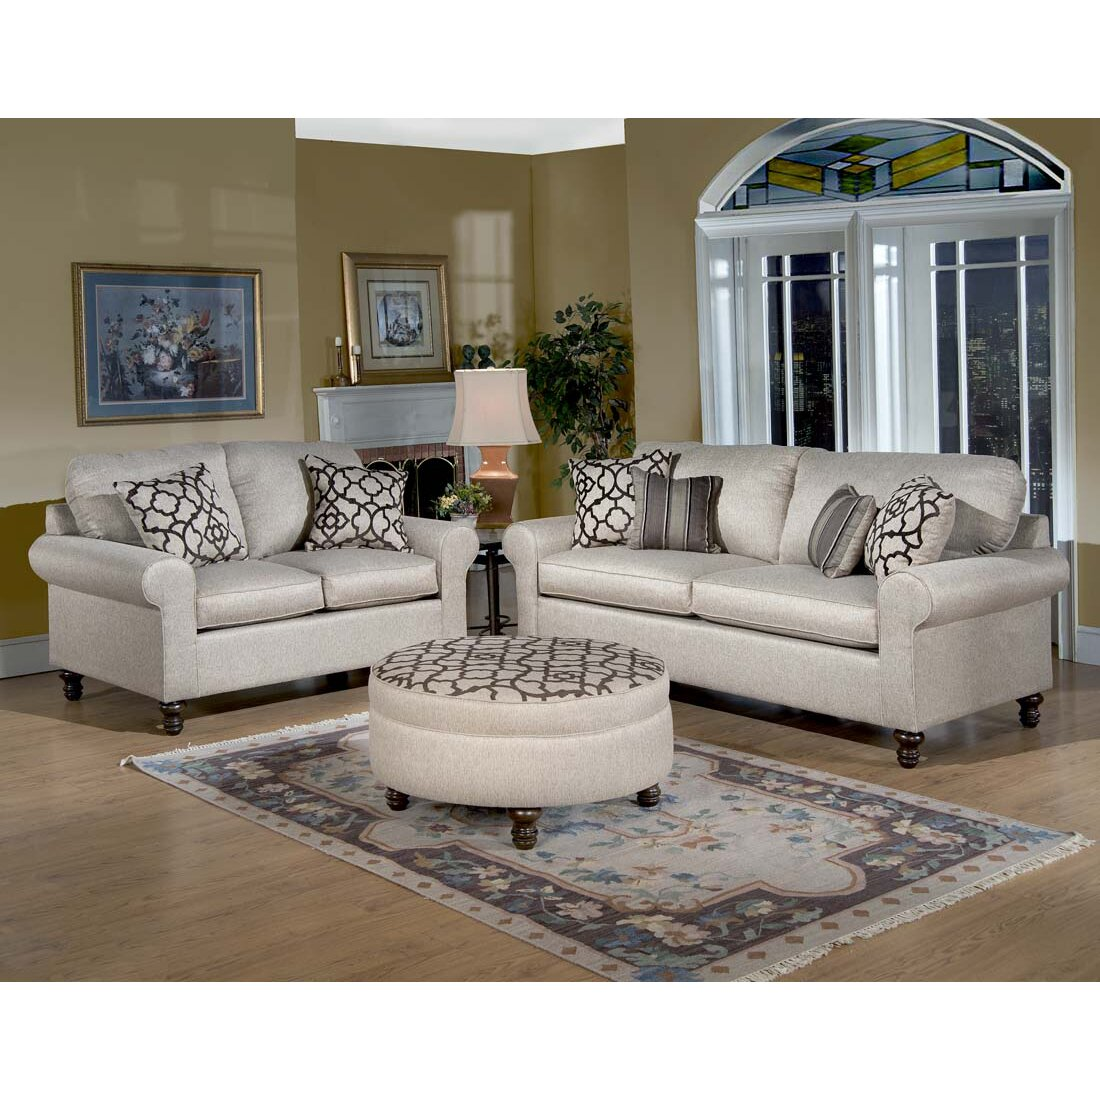 Piedmont Furniture Elizabeth Living Room Collection